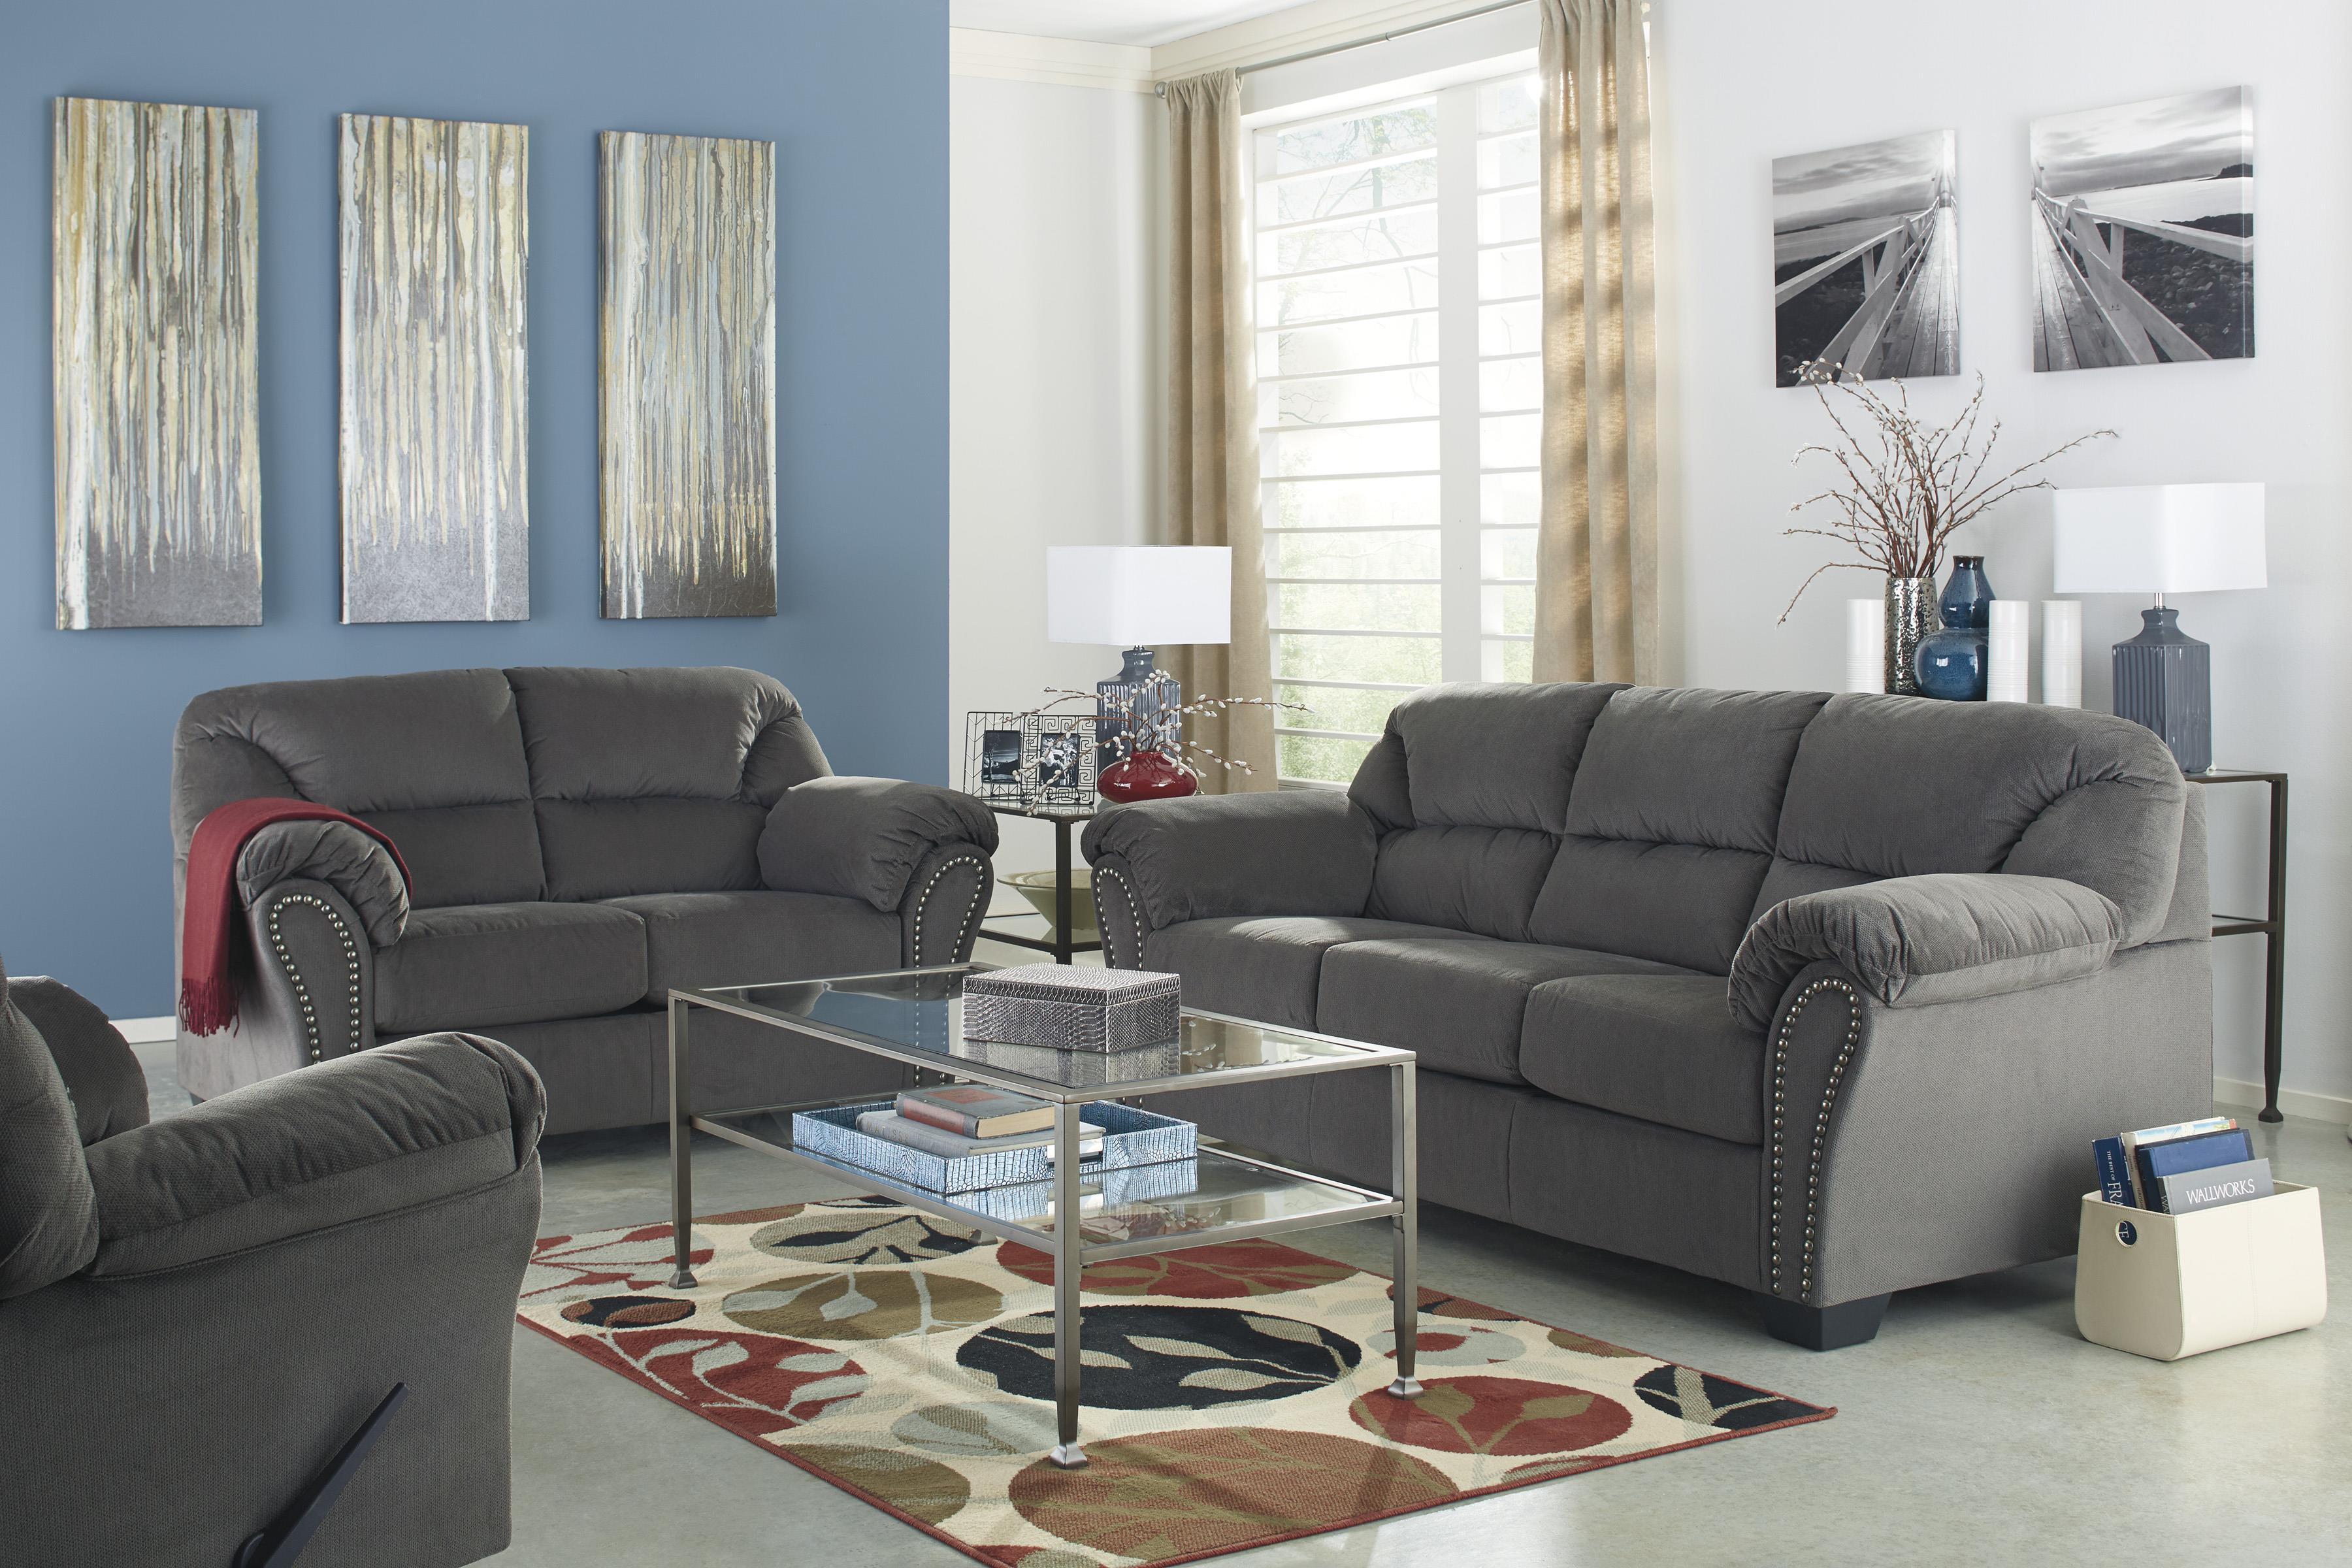 Signature Design by Ashley Kinlock Stationary Living Room Group - Item Number: 33400 Living Room Group 3